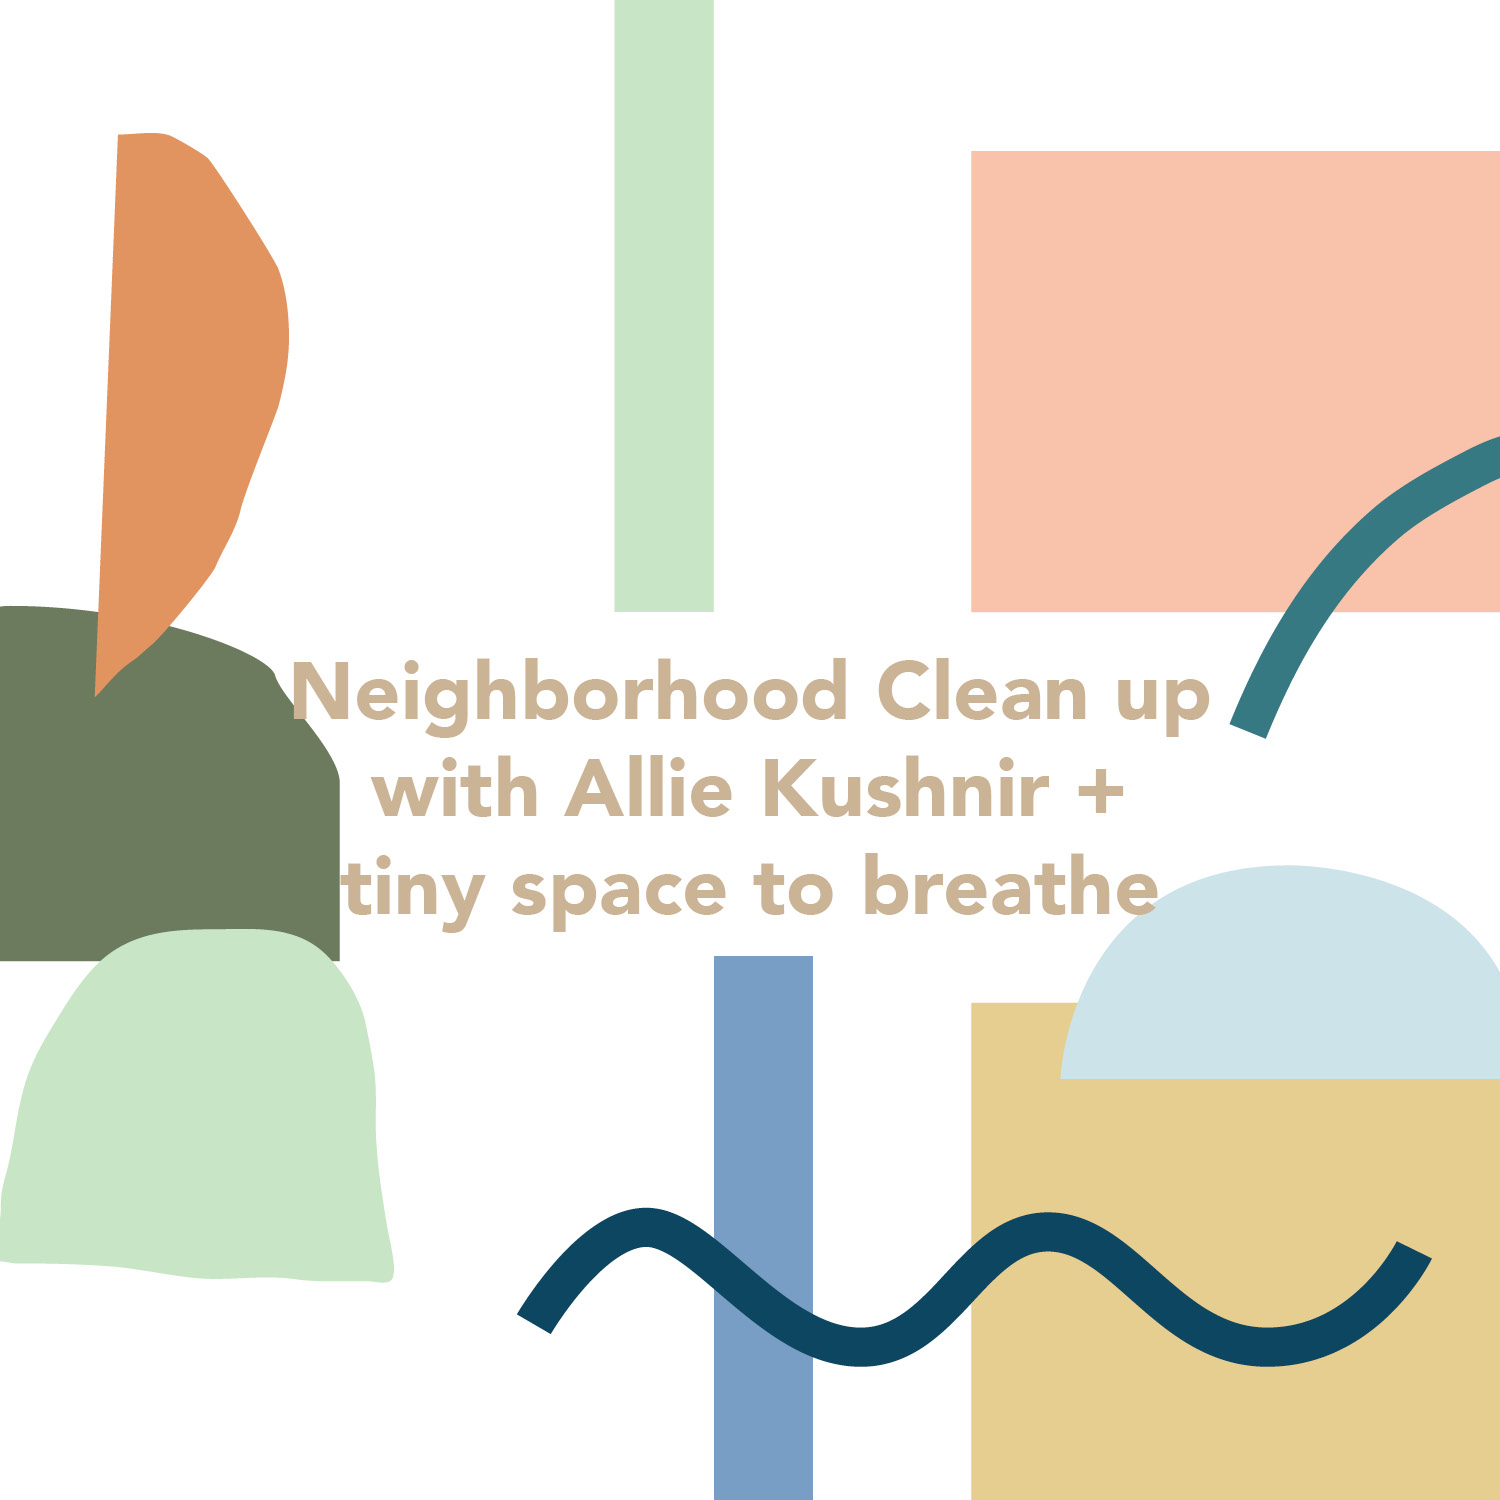 Square_neighborhood clean up - LS.jpg